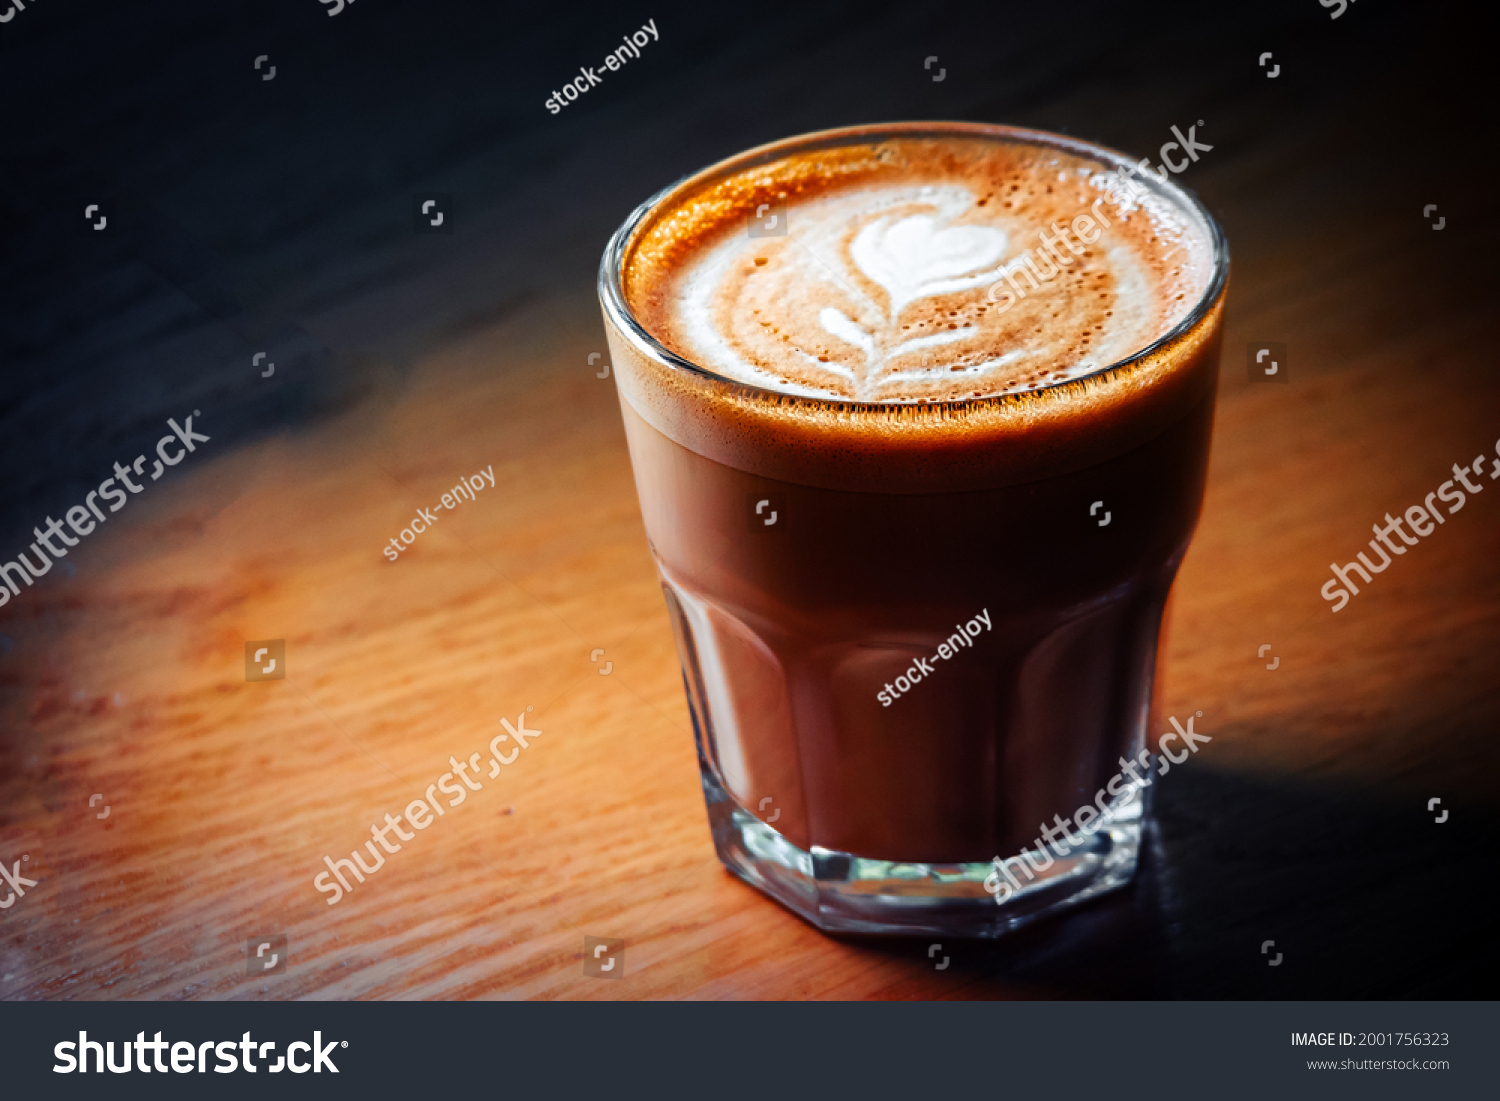 Flat-white coffee cup served on wooden table in spot of light, copyspace on left